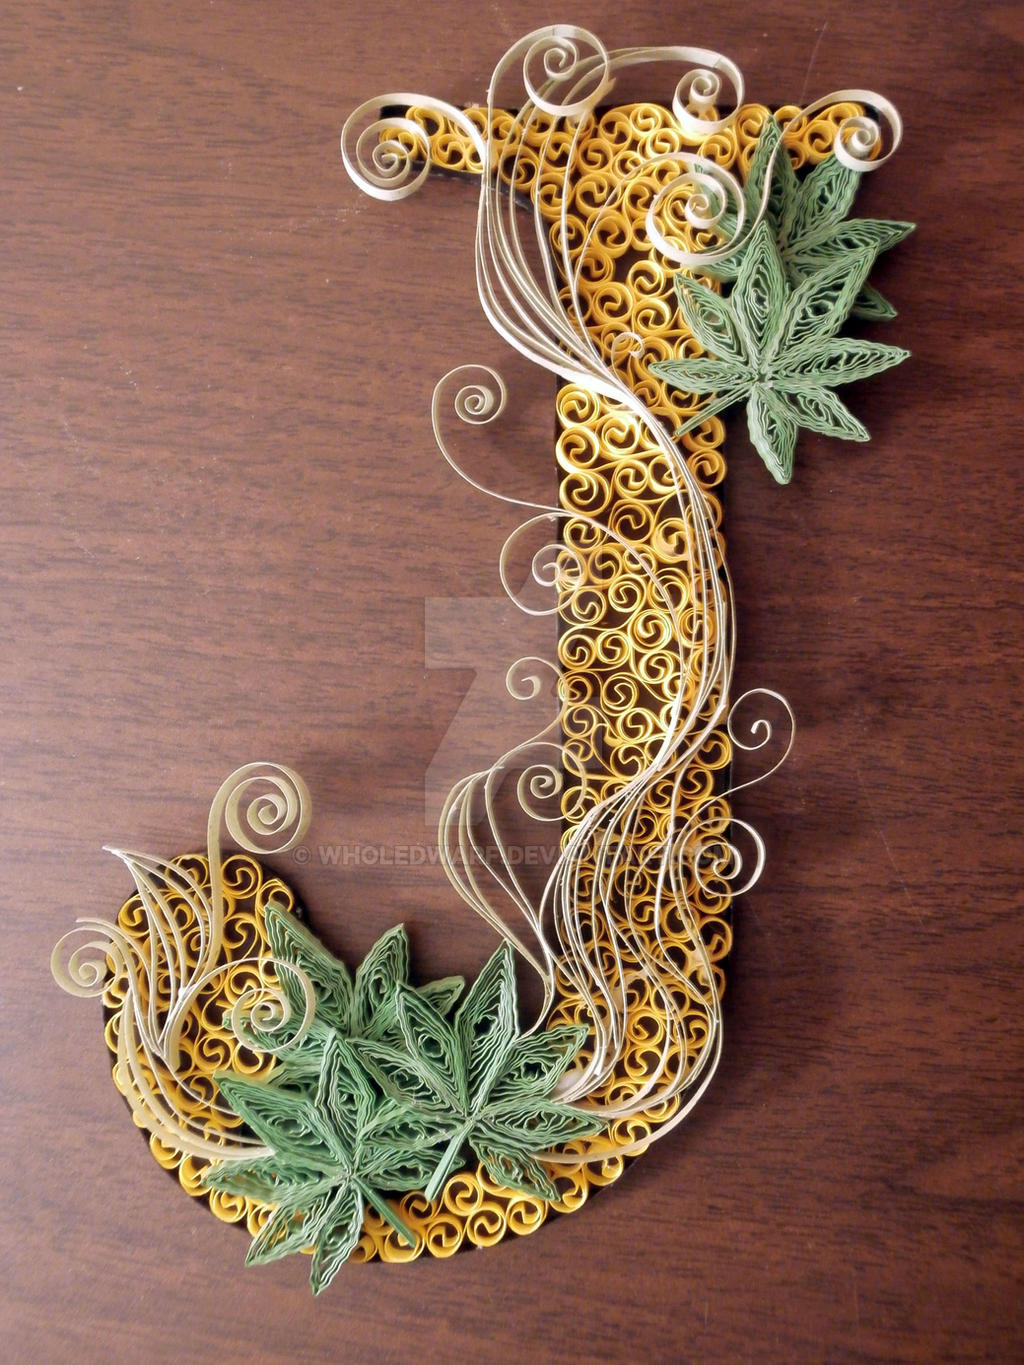 Paper quilling letter j by wholedwarf on deviantart - Paper quilling art wallpapers ...